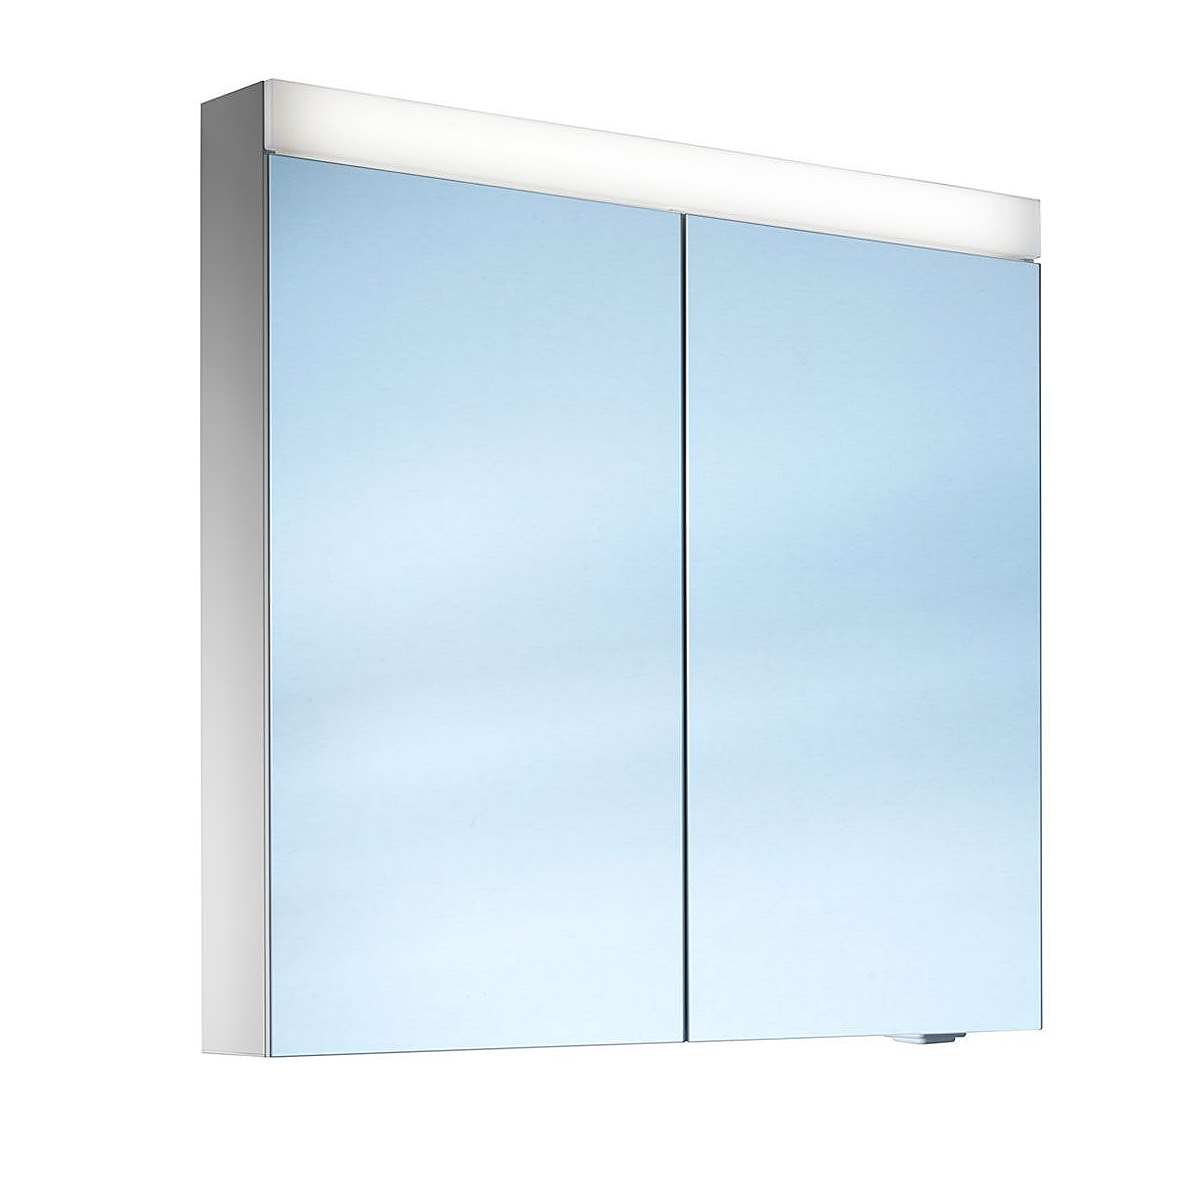 Schneider pataline 2 door led mirror cabinet 600mm more for Bathroom cabinets led